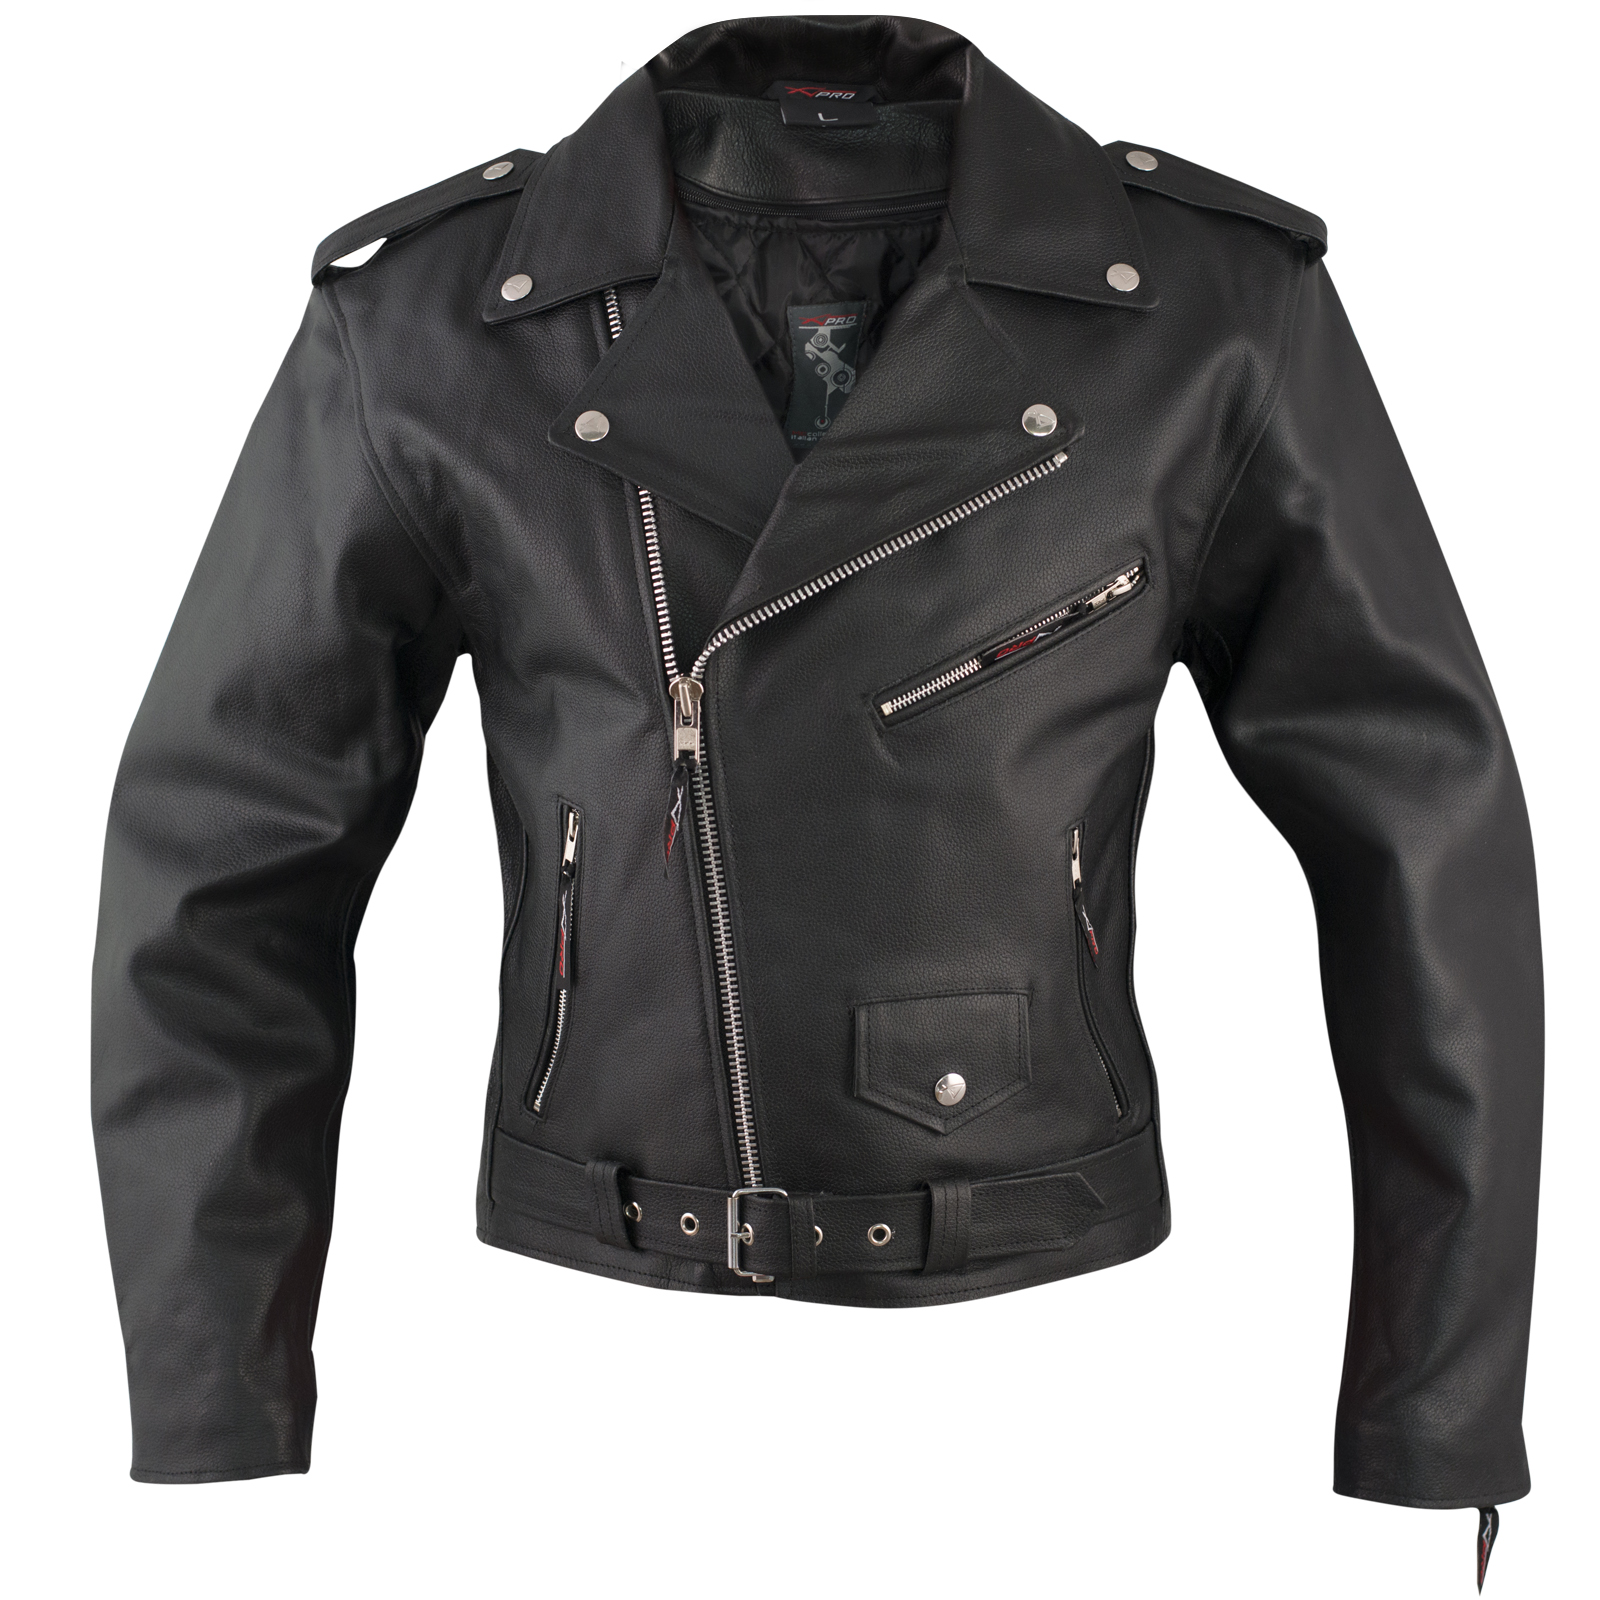 Bikers-leather-Cruiser-Motorcycle-Jacket-Motorcycle-Cow-Hide-All-Season-A-PRO